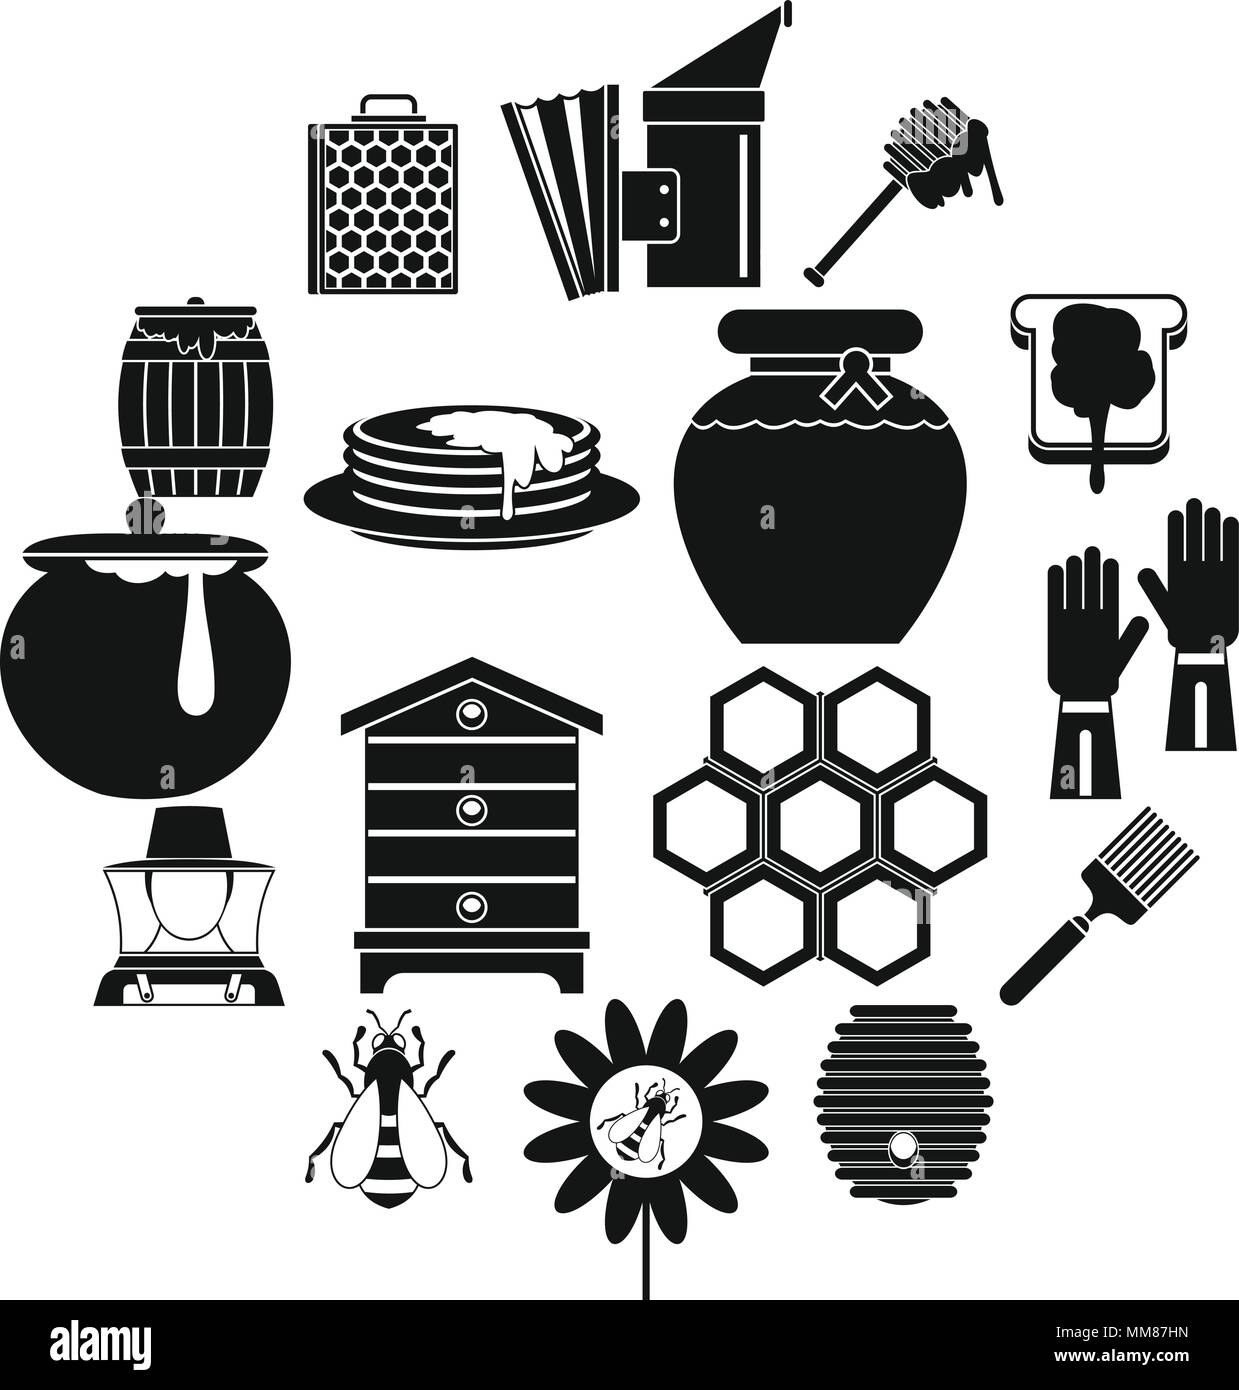 Apiary tools icons set, simple style Stock Vector